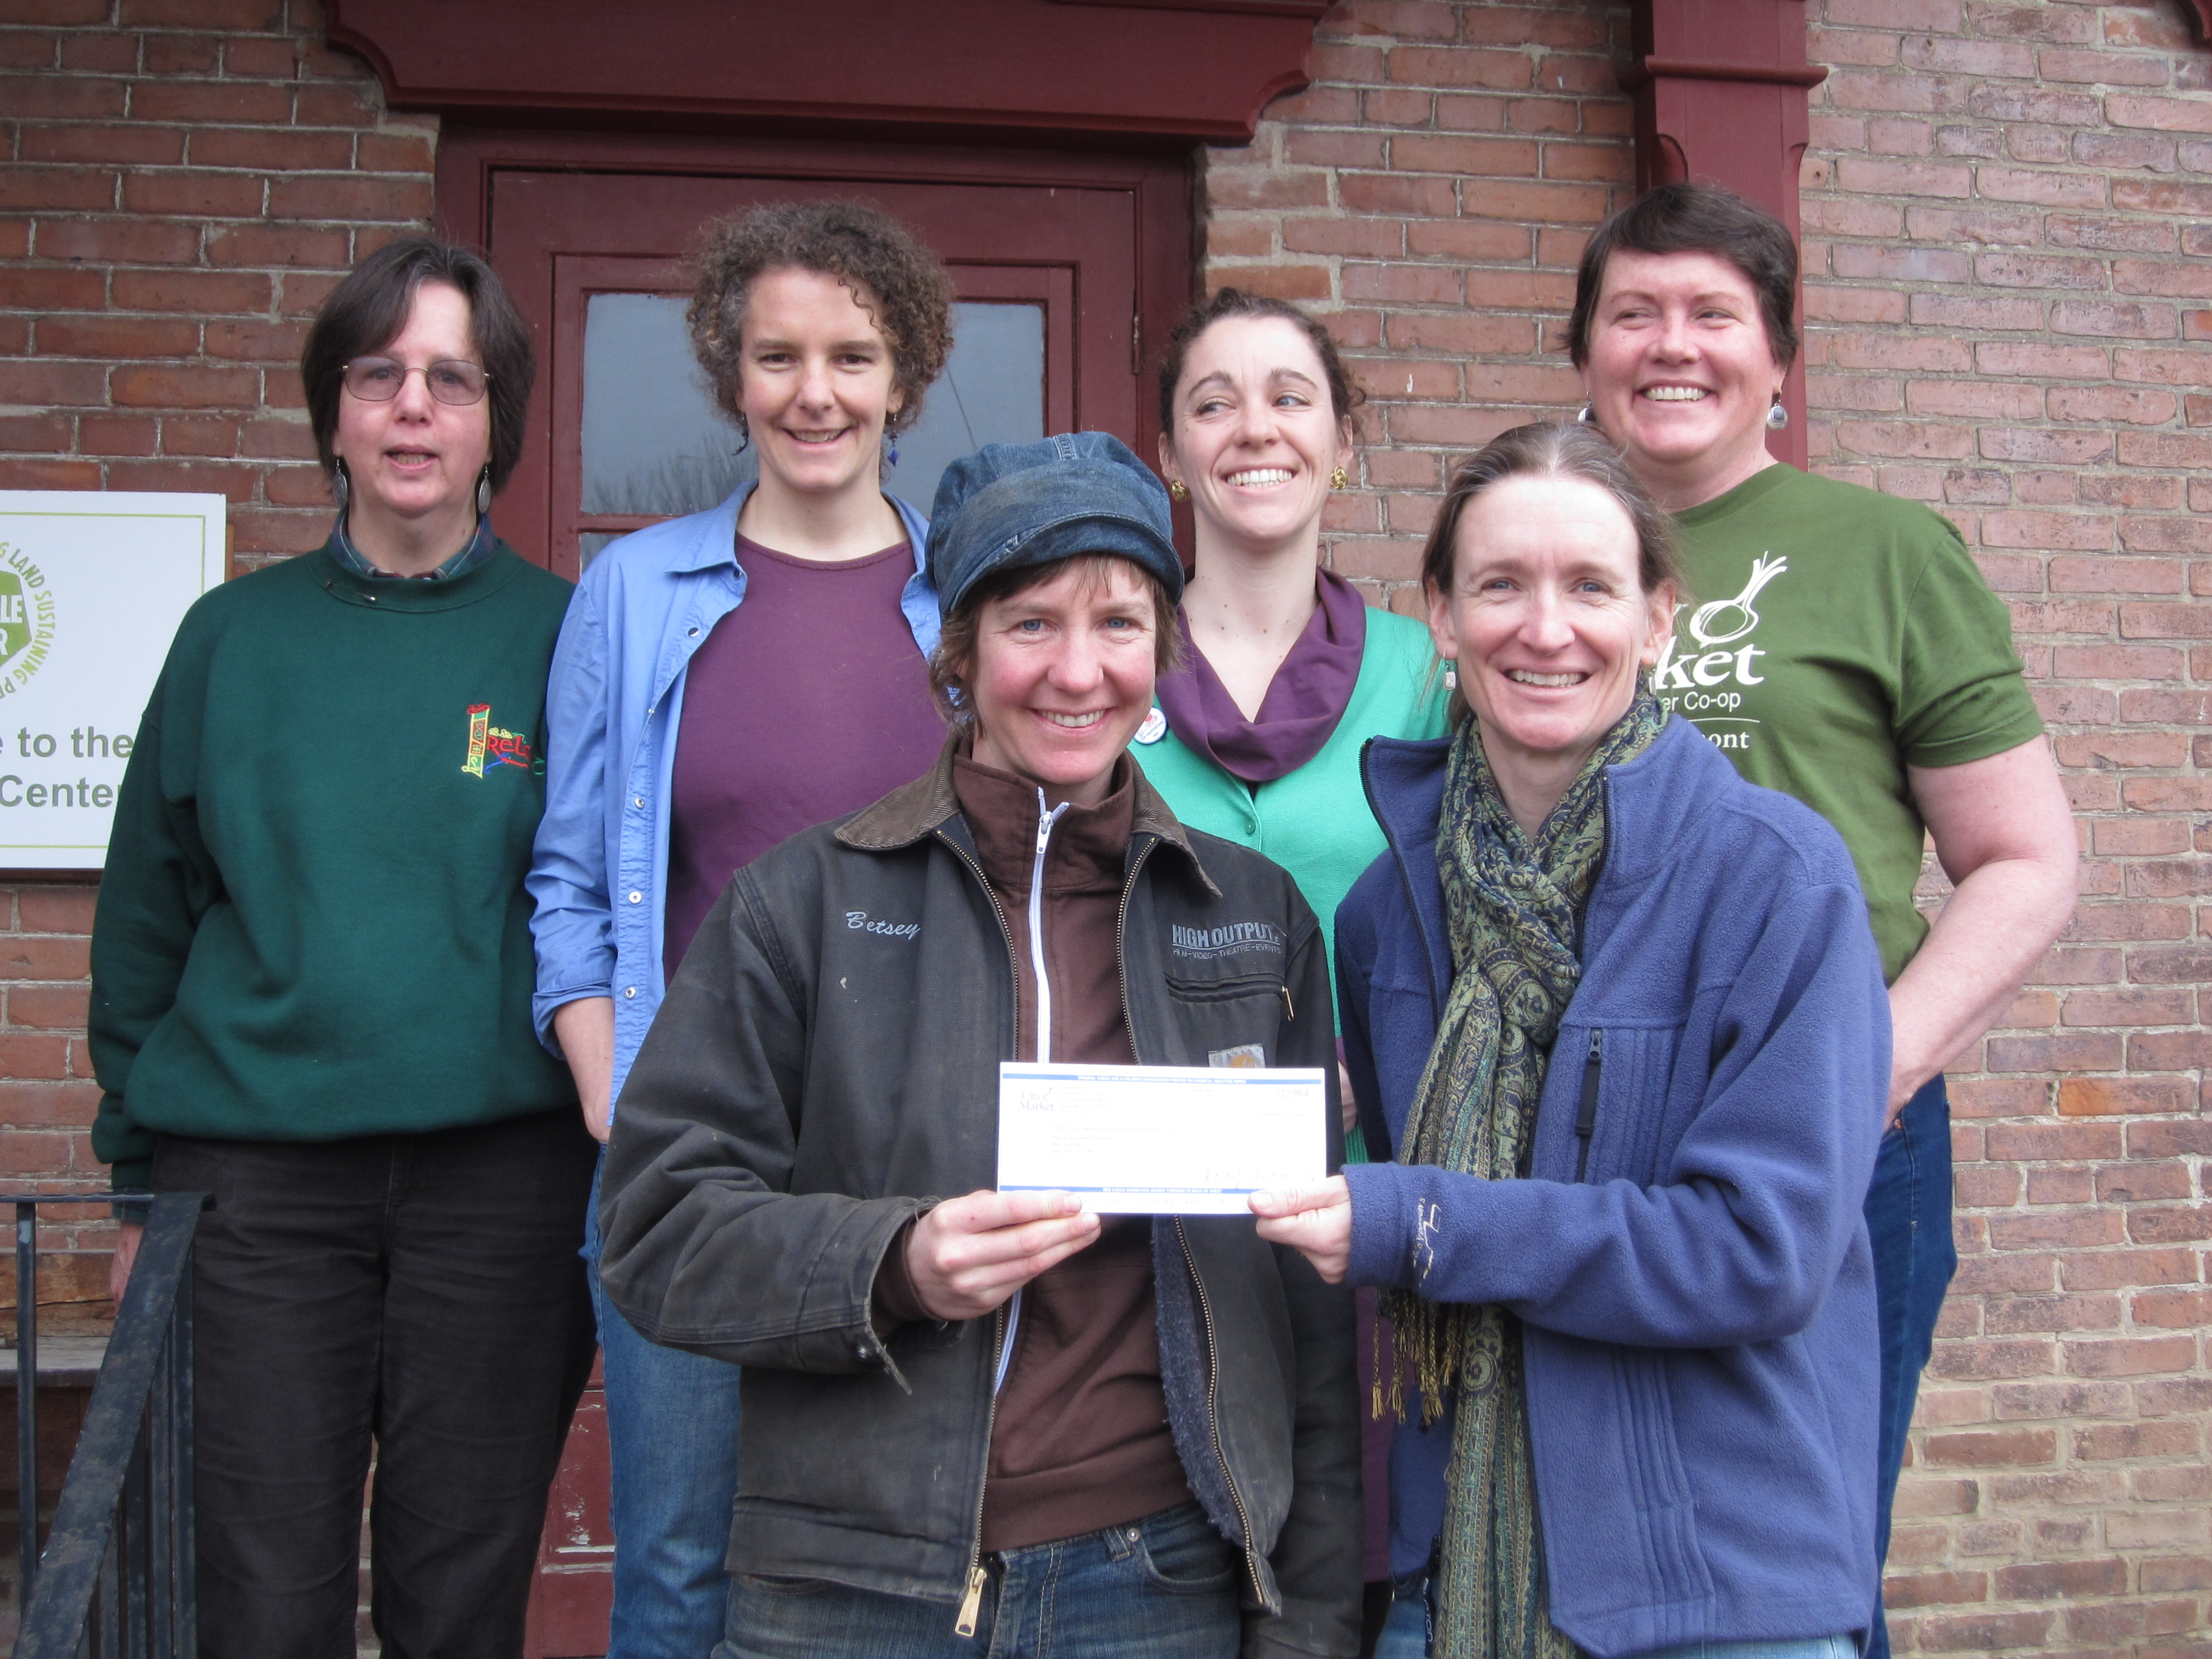 Susan Munkres, Board President of City Market (front row, right) presents a donation check to Hilary Martin, President of The Intervale Farmers' Equipment Company. Pictured here with other City Market Board Members (back row, l to r) Nancy Nesbitt, Rachel Jolly, Molly O'Brien, and Maura Finn.